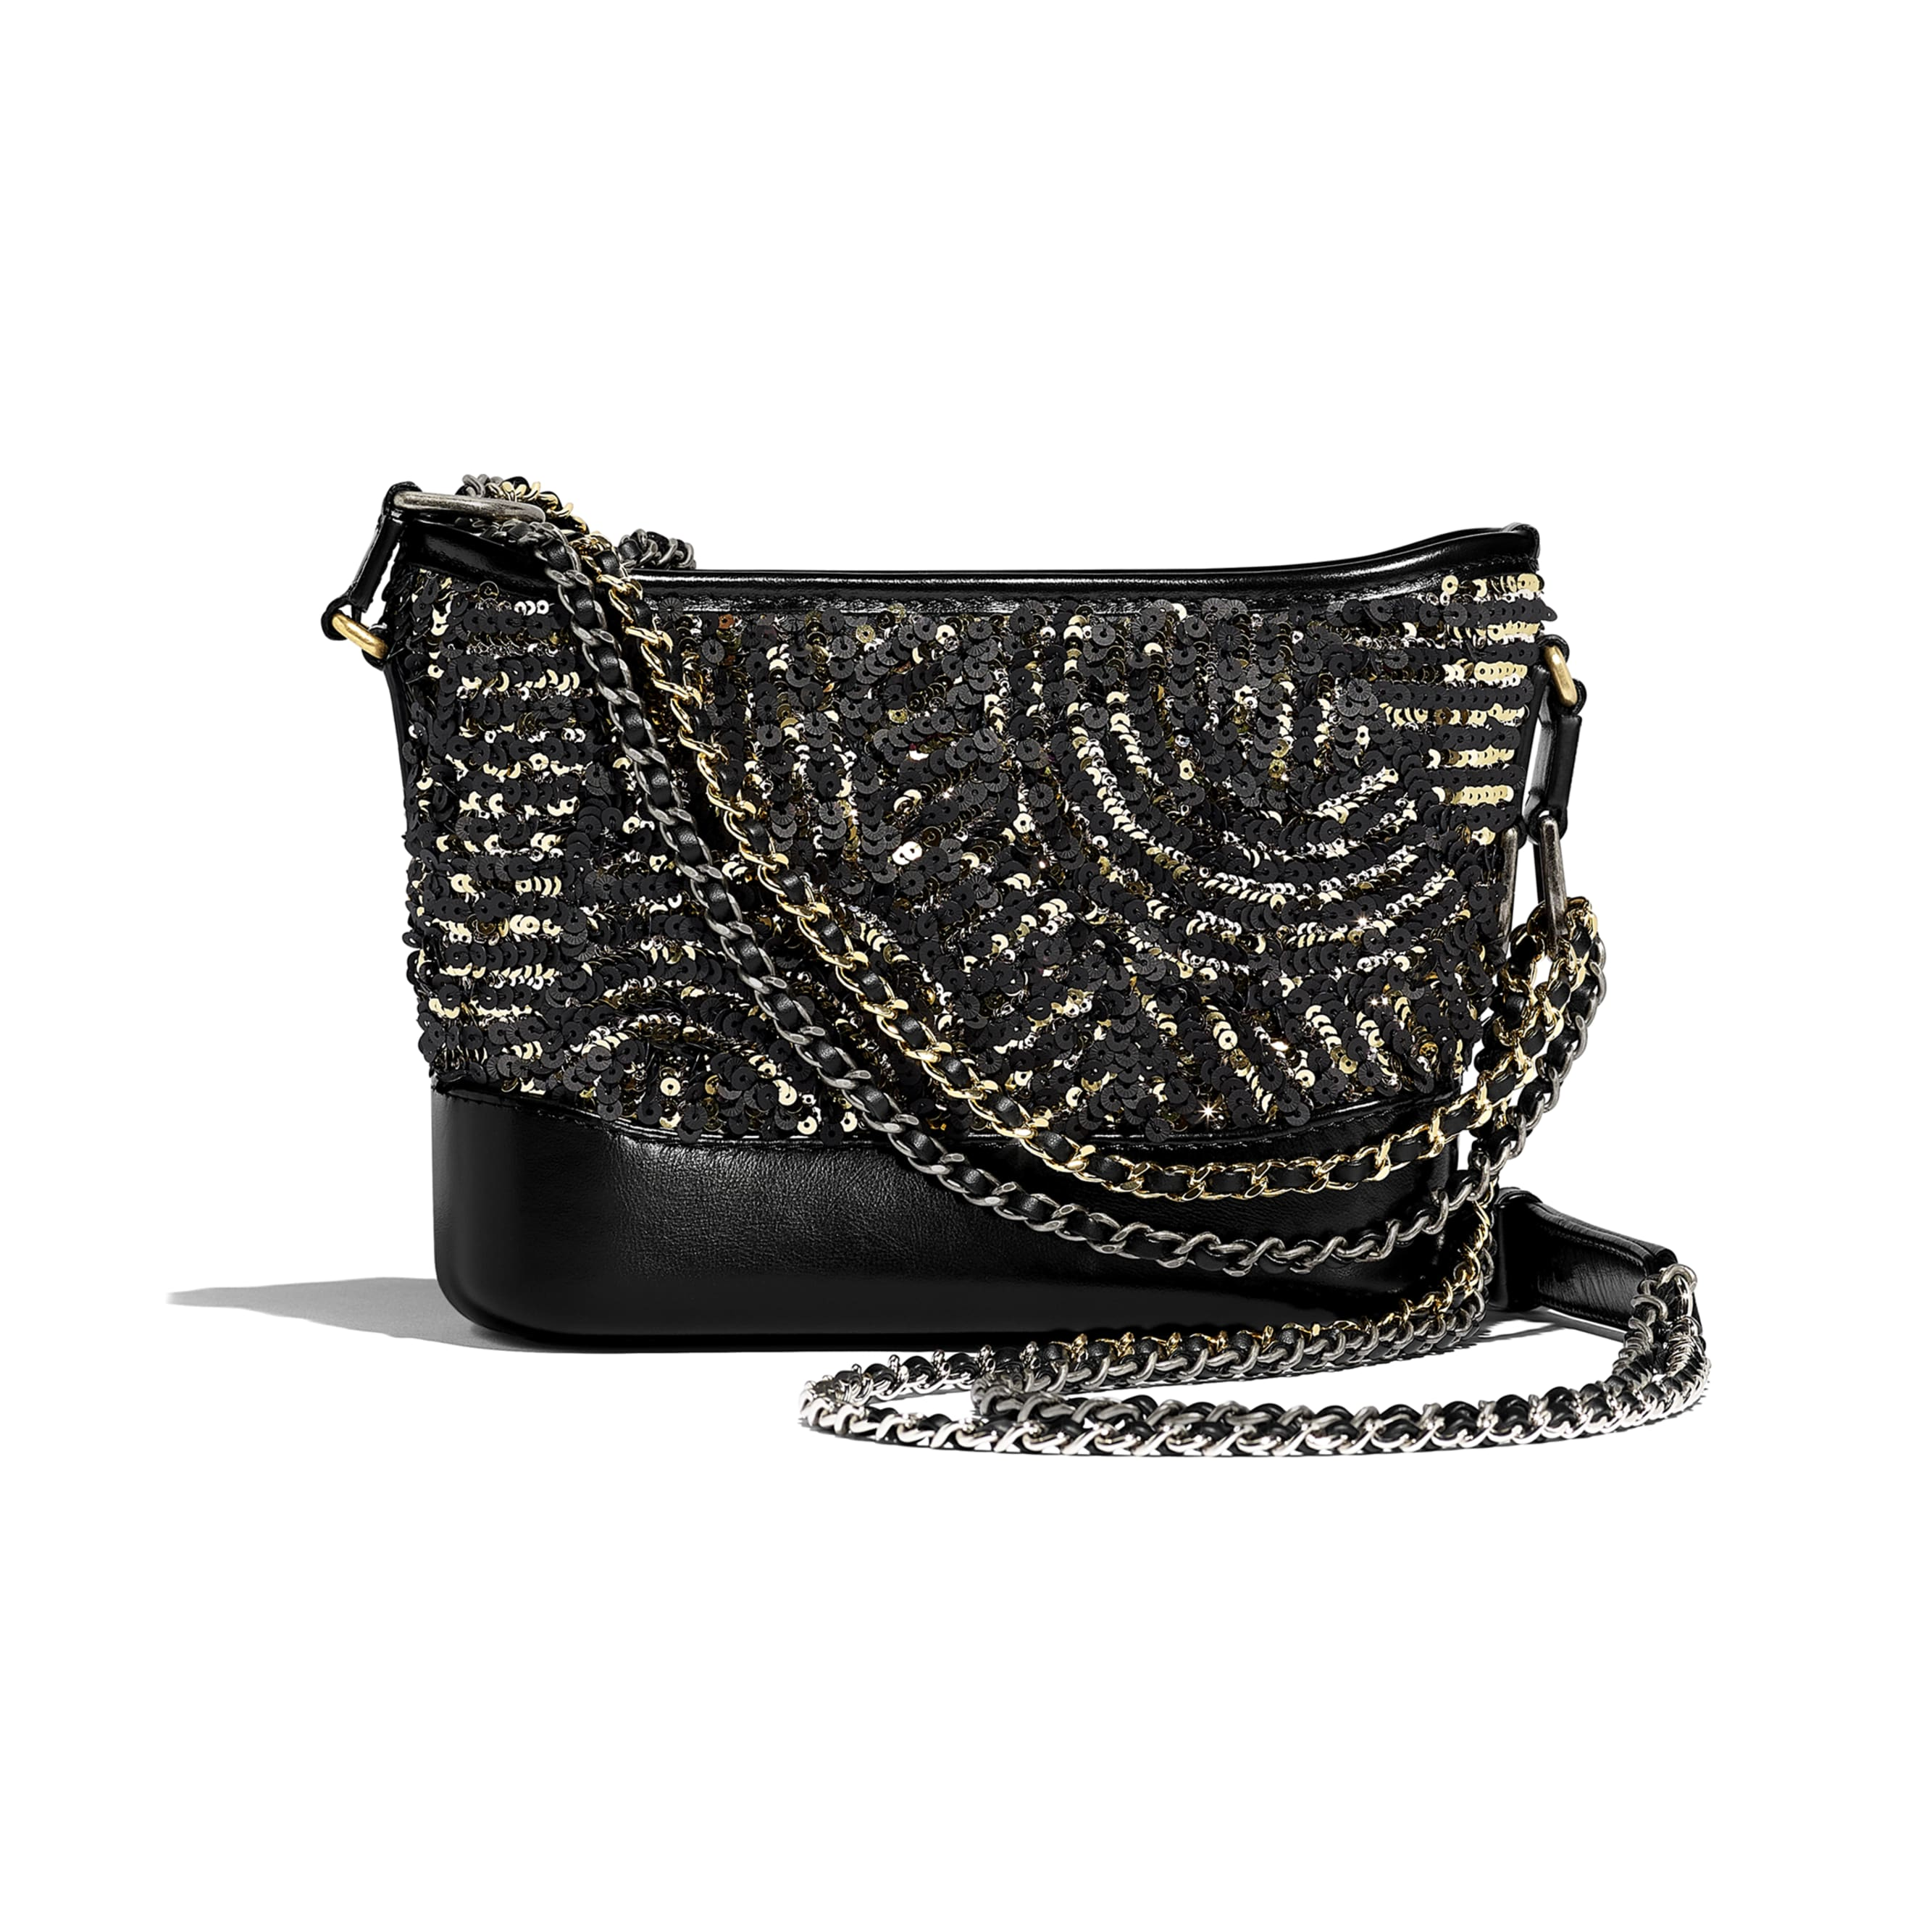 CHANEL'S GABRIELLE Small Hobo Bag - Black & Gold - Sequin, Calfskin, Gold-Tone & Silver-Tone Metal - Alternative view - see standard sized version